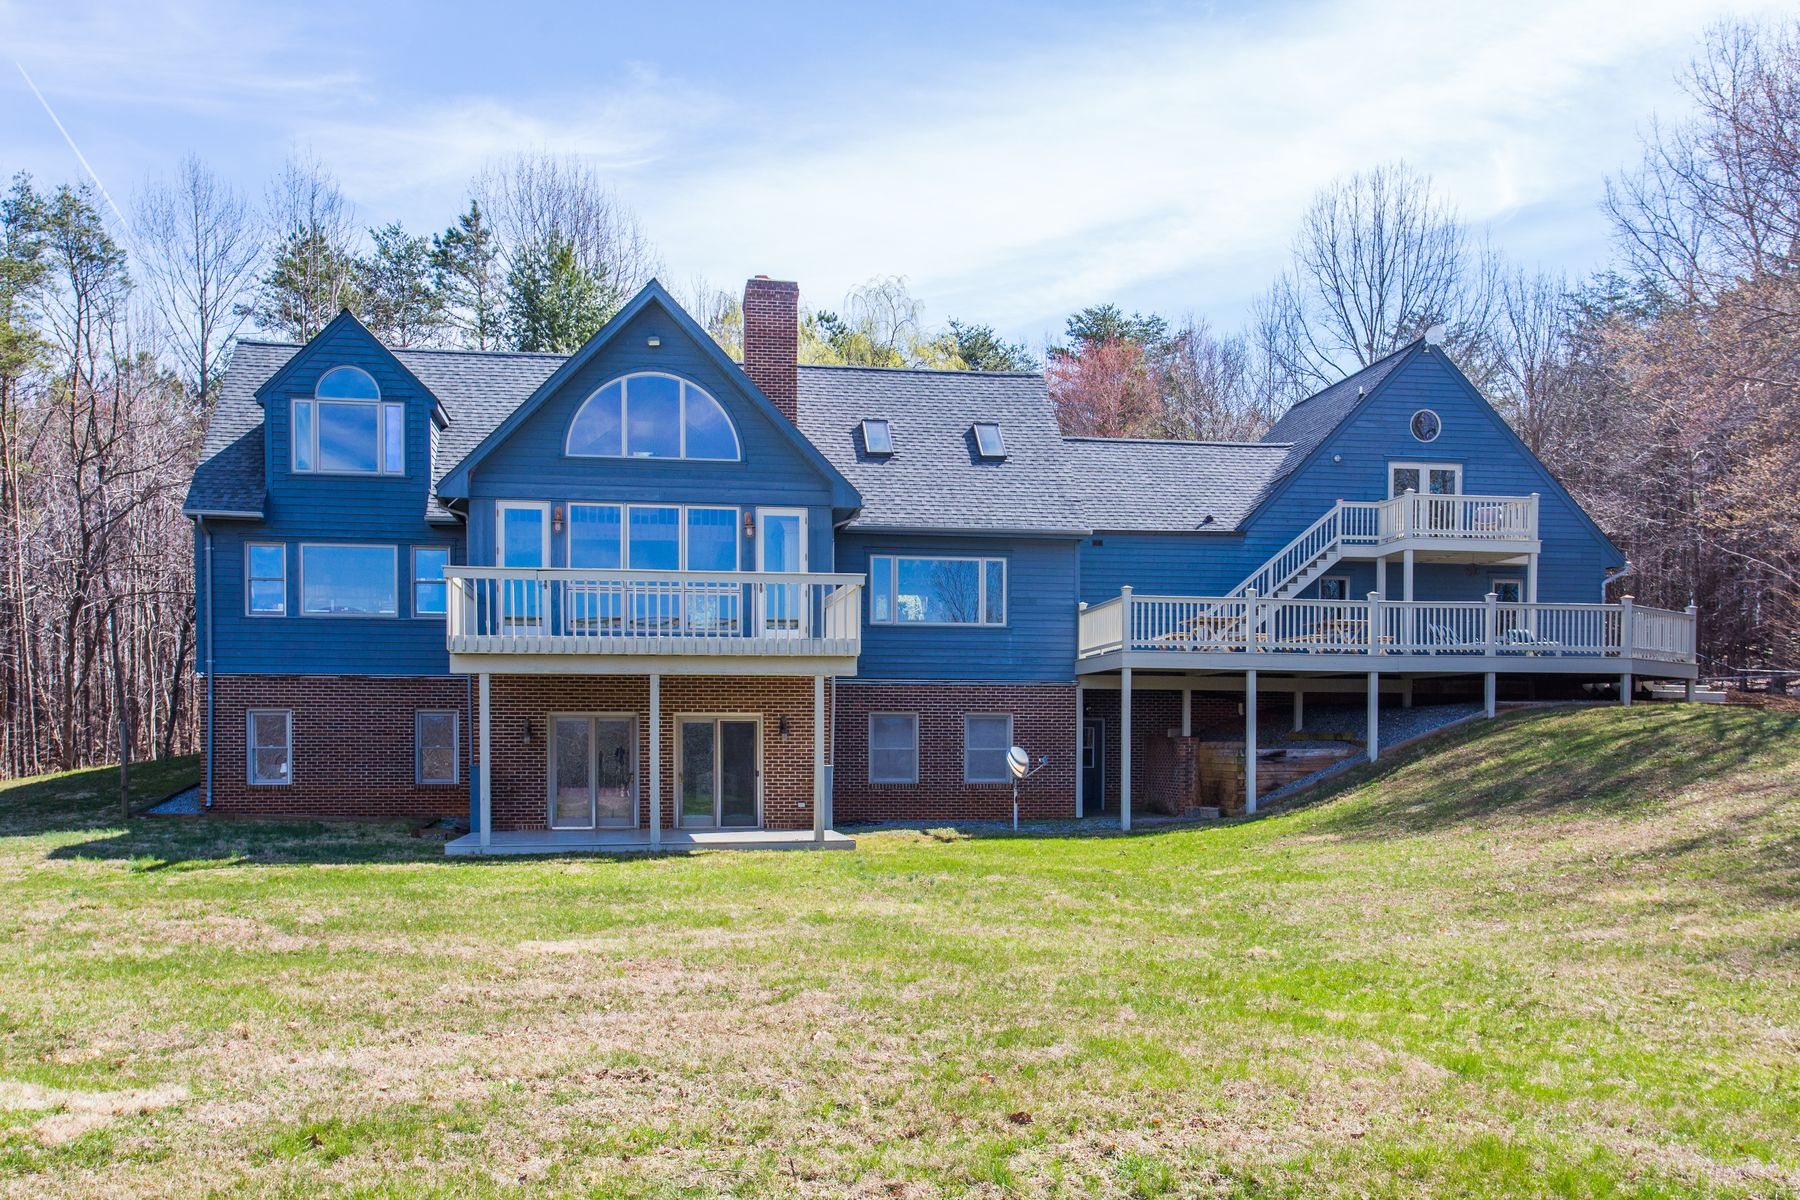 Single Family Home for Sale at Rehoboth Farm 1056 Ortman Rd Afton, Virginia 22920 United States